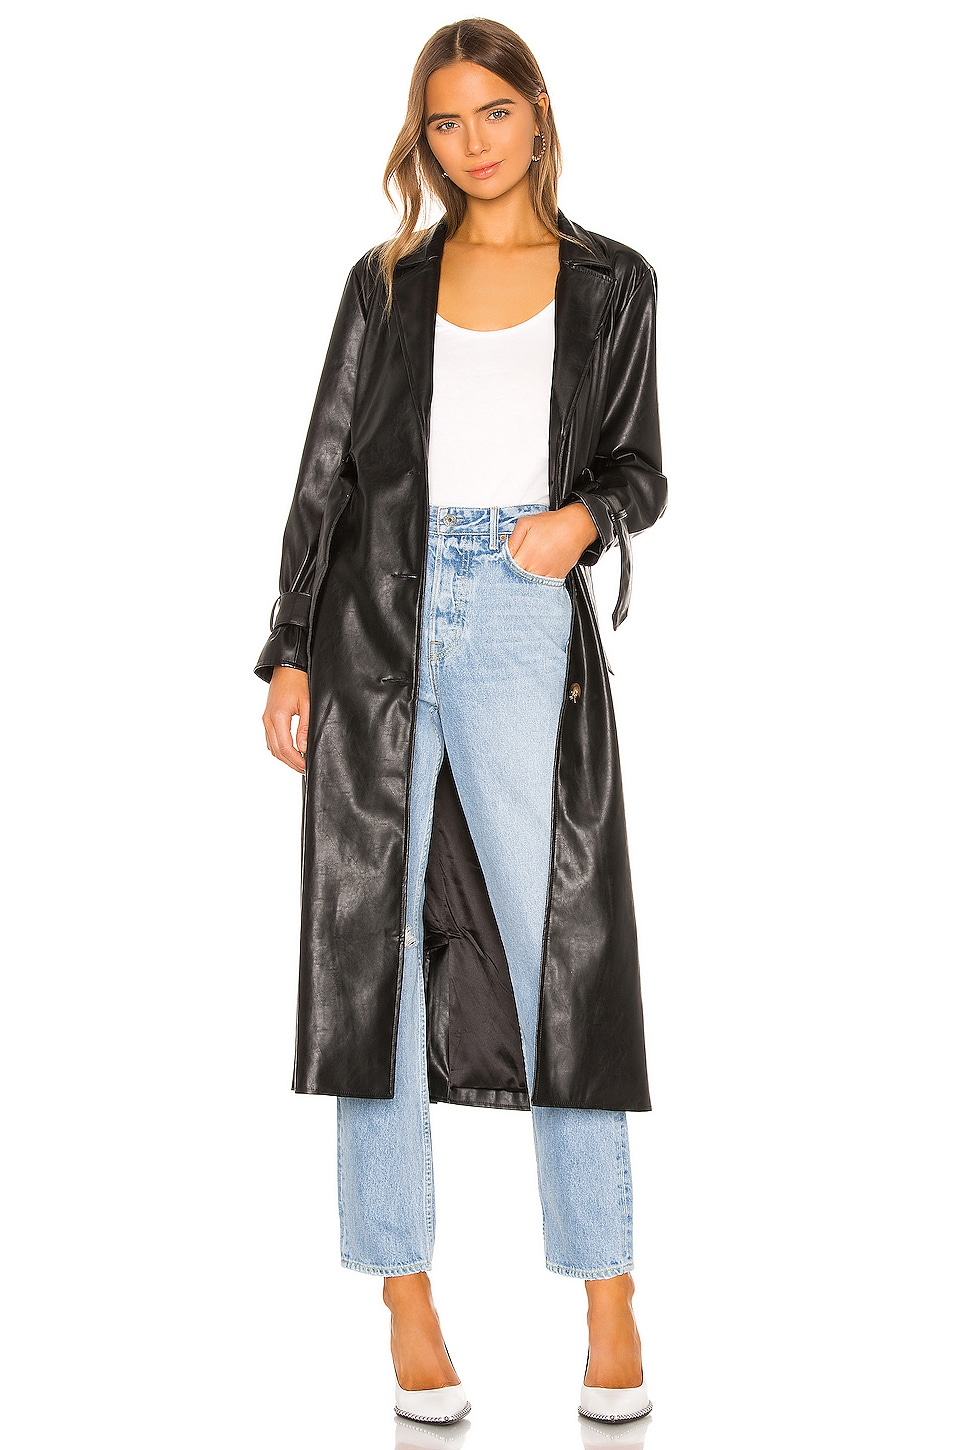 KENDALL + KYLIE Leather Duster Jacket in Black